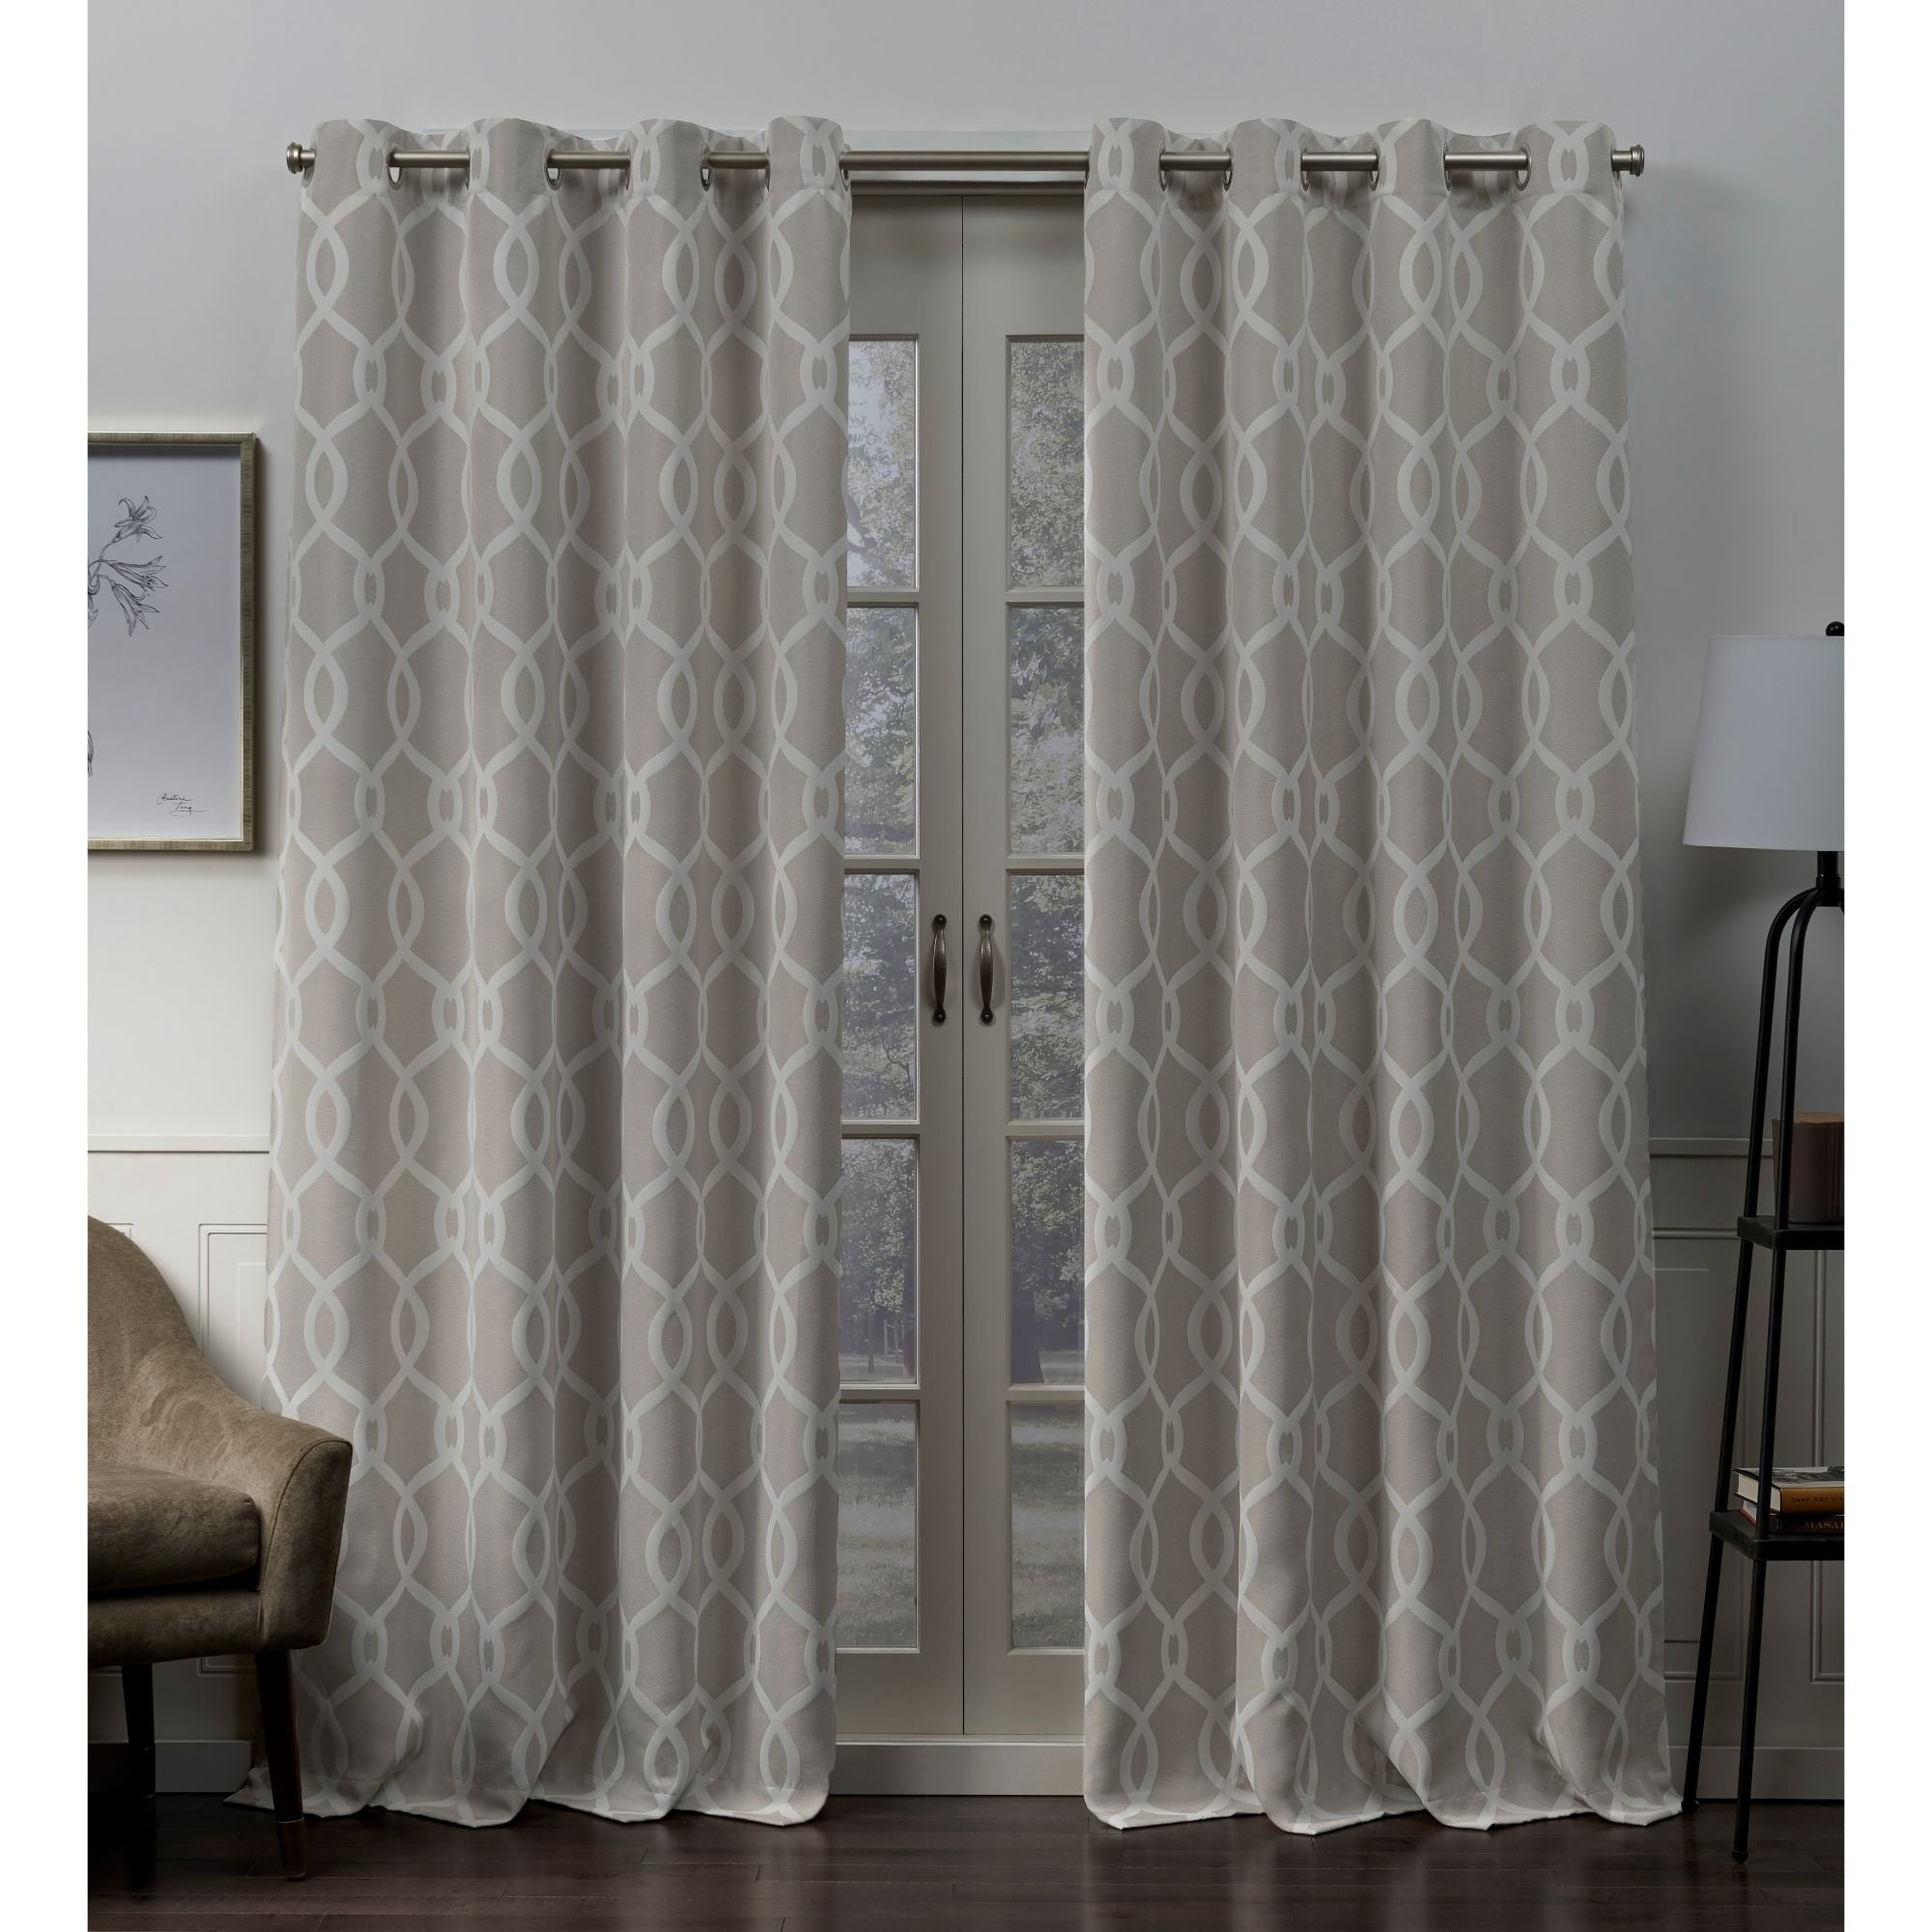 Ati Home Trilogi Woven Blackout Grommet Top Curtain Panel Pair Pertaining To Easton Thermal Woven Blackout Grommet Top Curtain Panel Pairs (View 5 of 20)